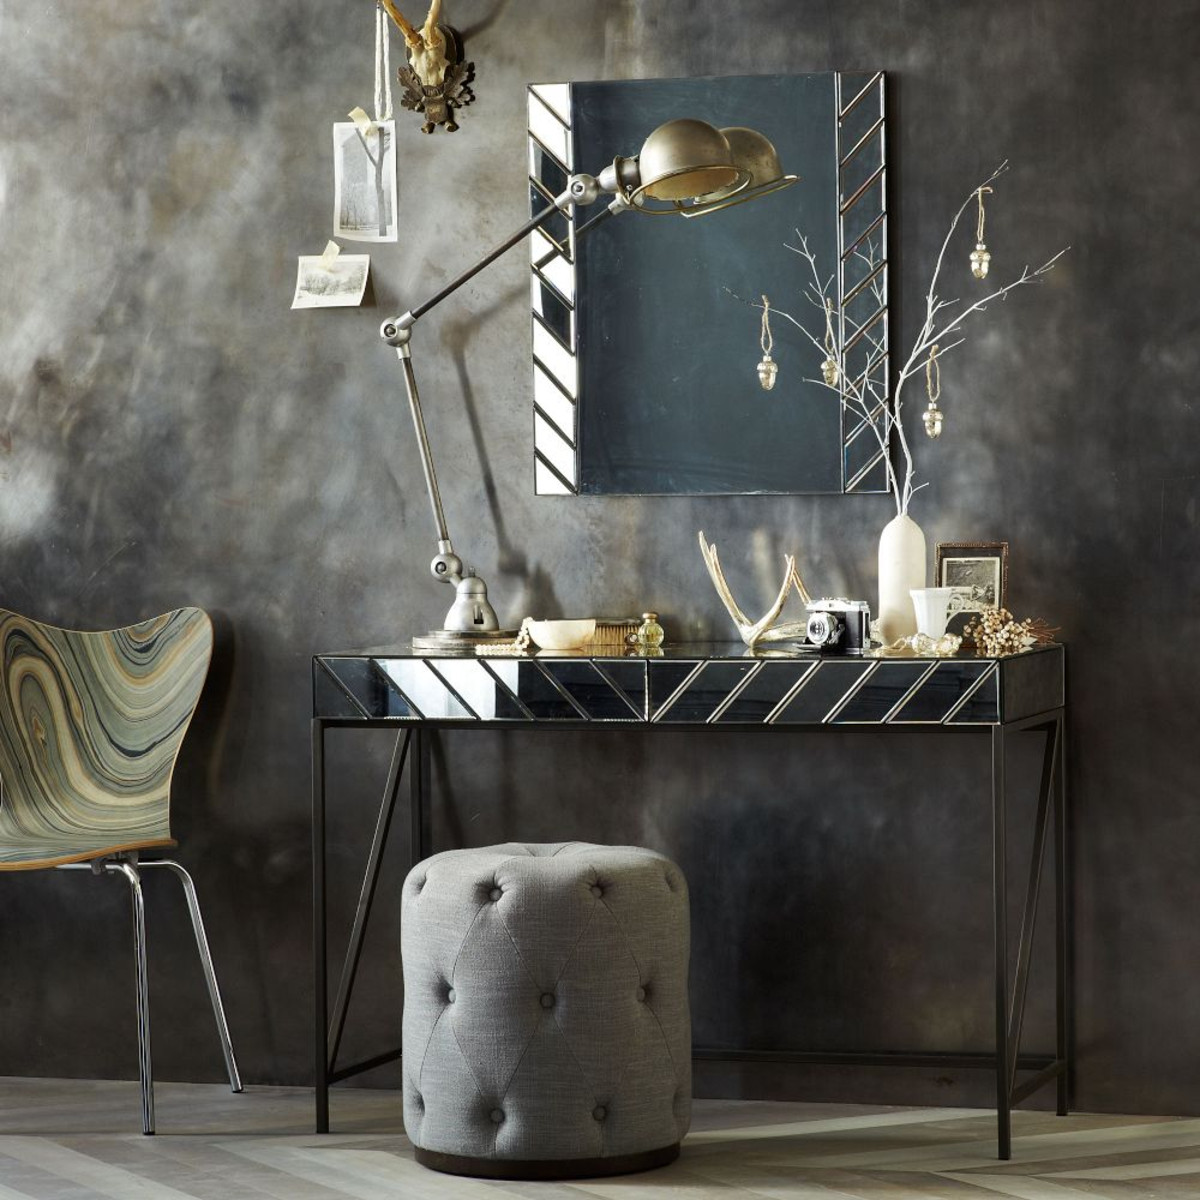 Herringbone mirrored dressing table from West Elm £394.95